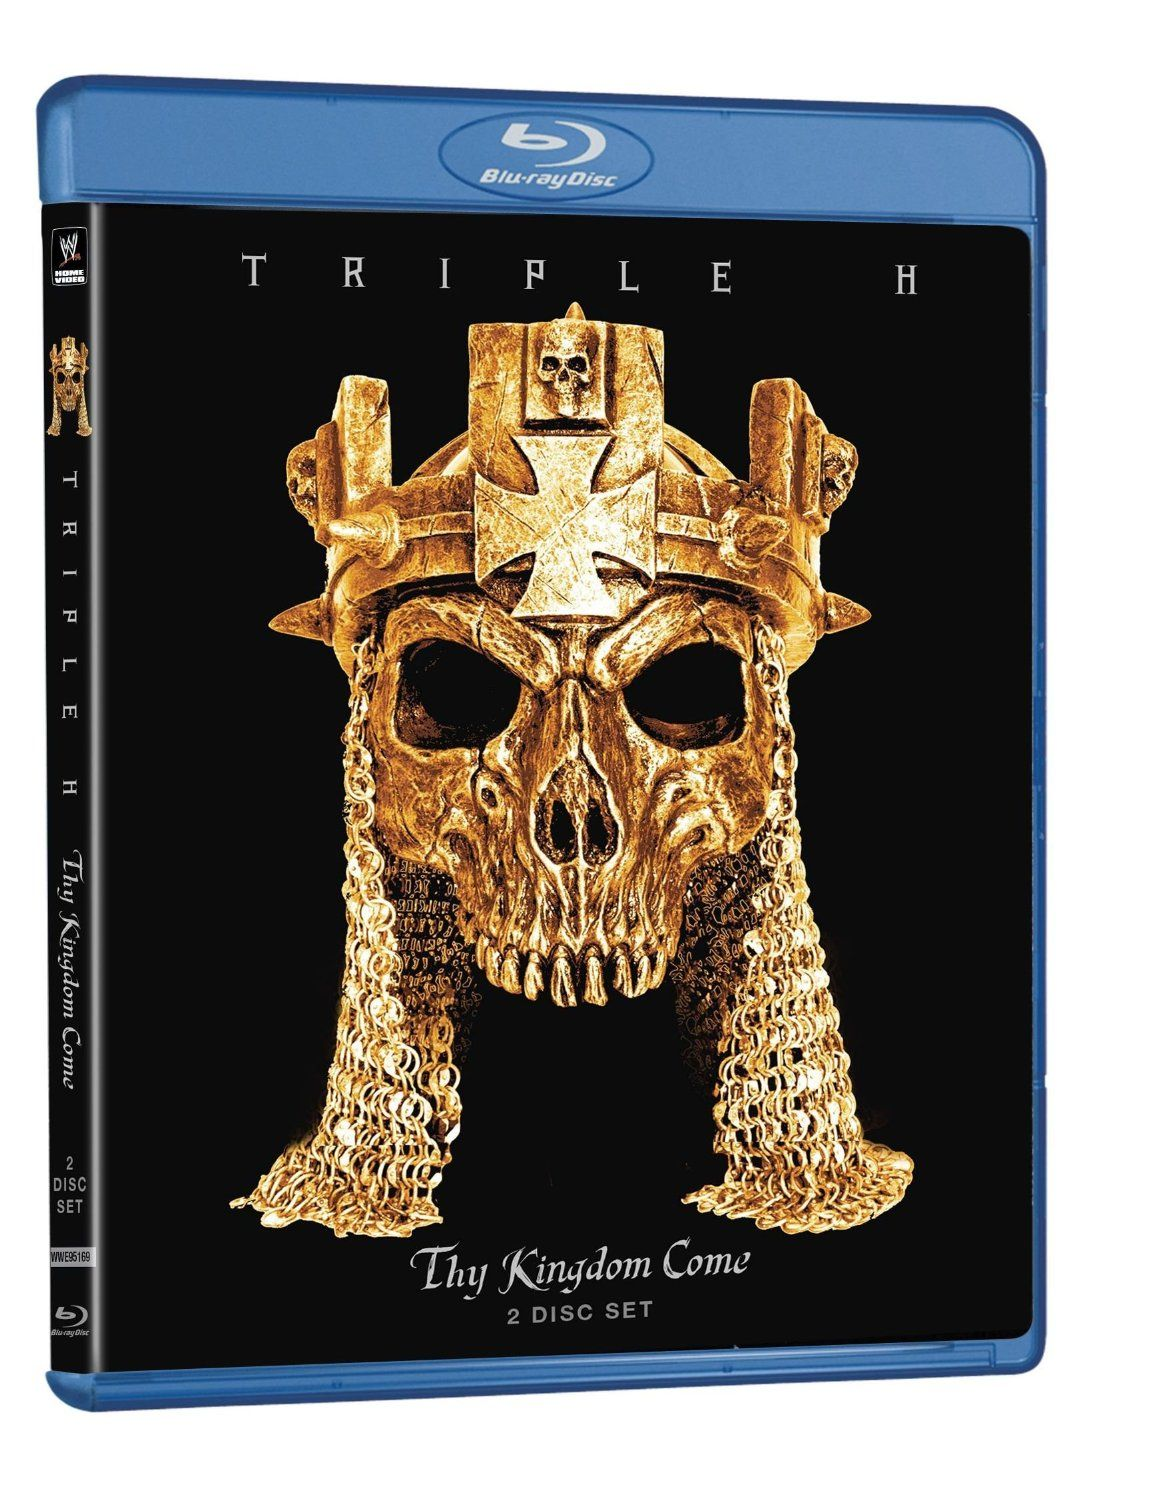 WWE: Triple H - Thy Kingdom Come  ($20.18) http://www.amazon.com/exec/obidos/ASIN/B00DCLT9R4/hpb2-20/ASIN/B00DCLT9R4 The match selection is nice. - All it was really was some of his best matches with him briefly talking about stuff in between the matches. - Highly recommend it to wrestling fans, a very good set.